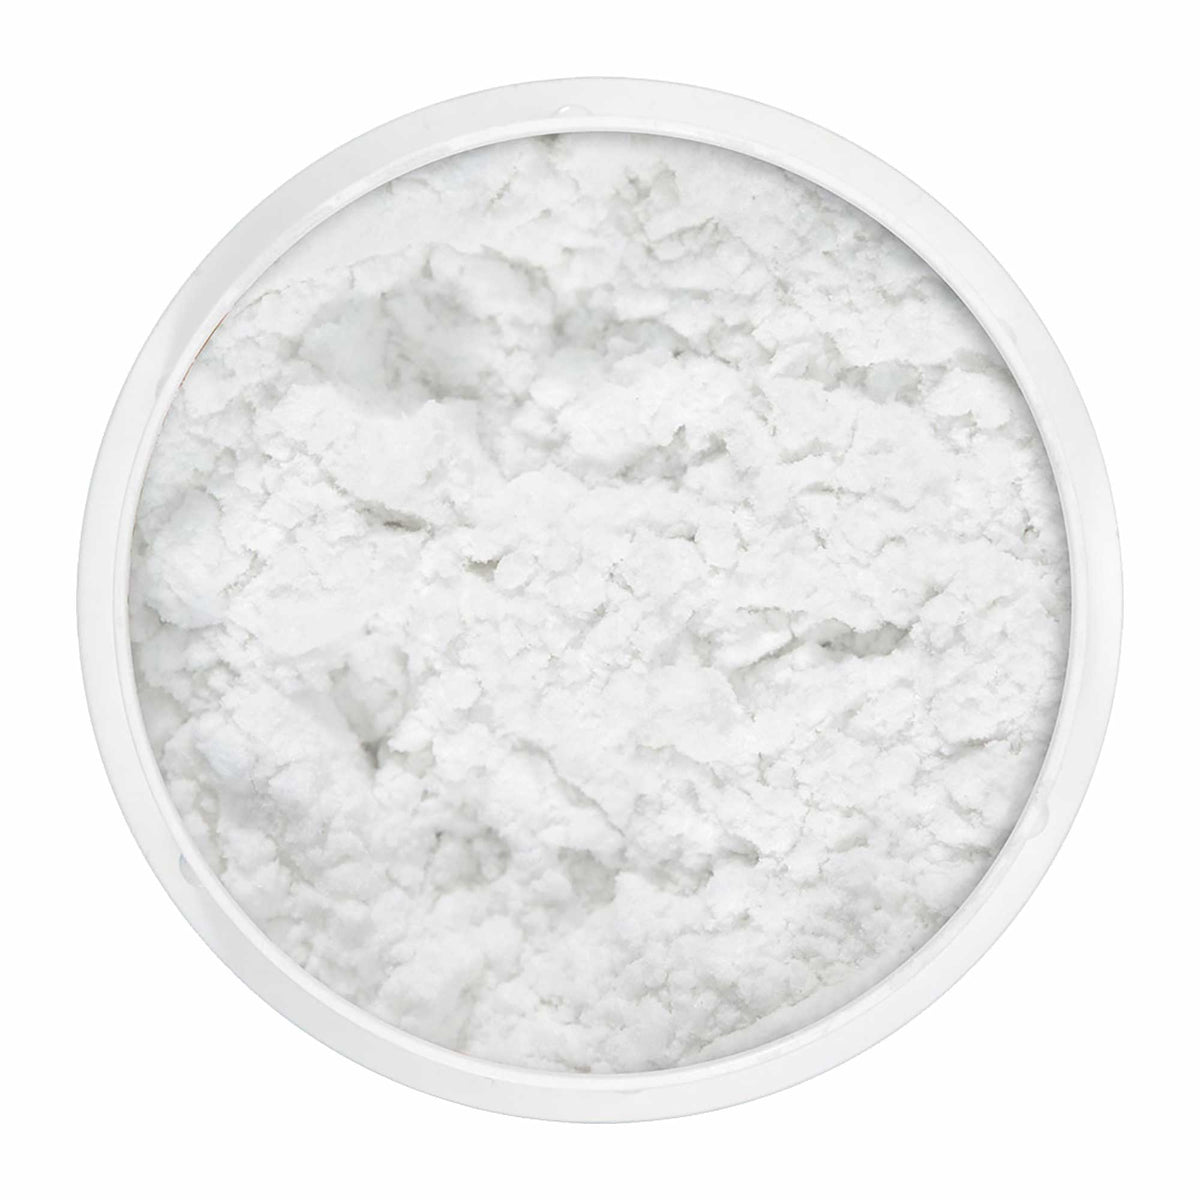 Dermacolor Fixing Powder - Setting Powder